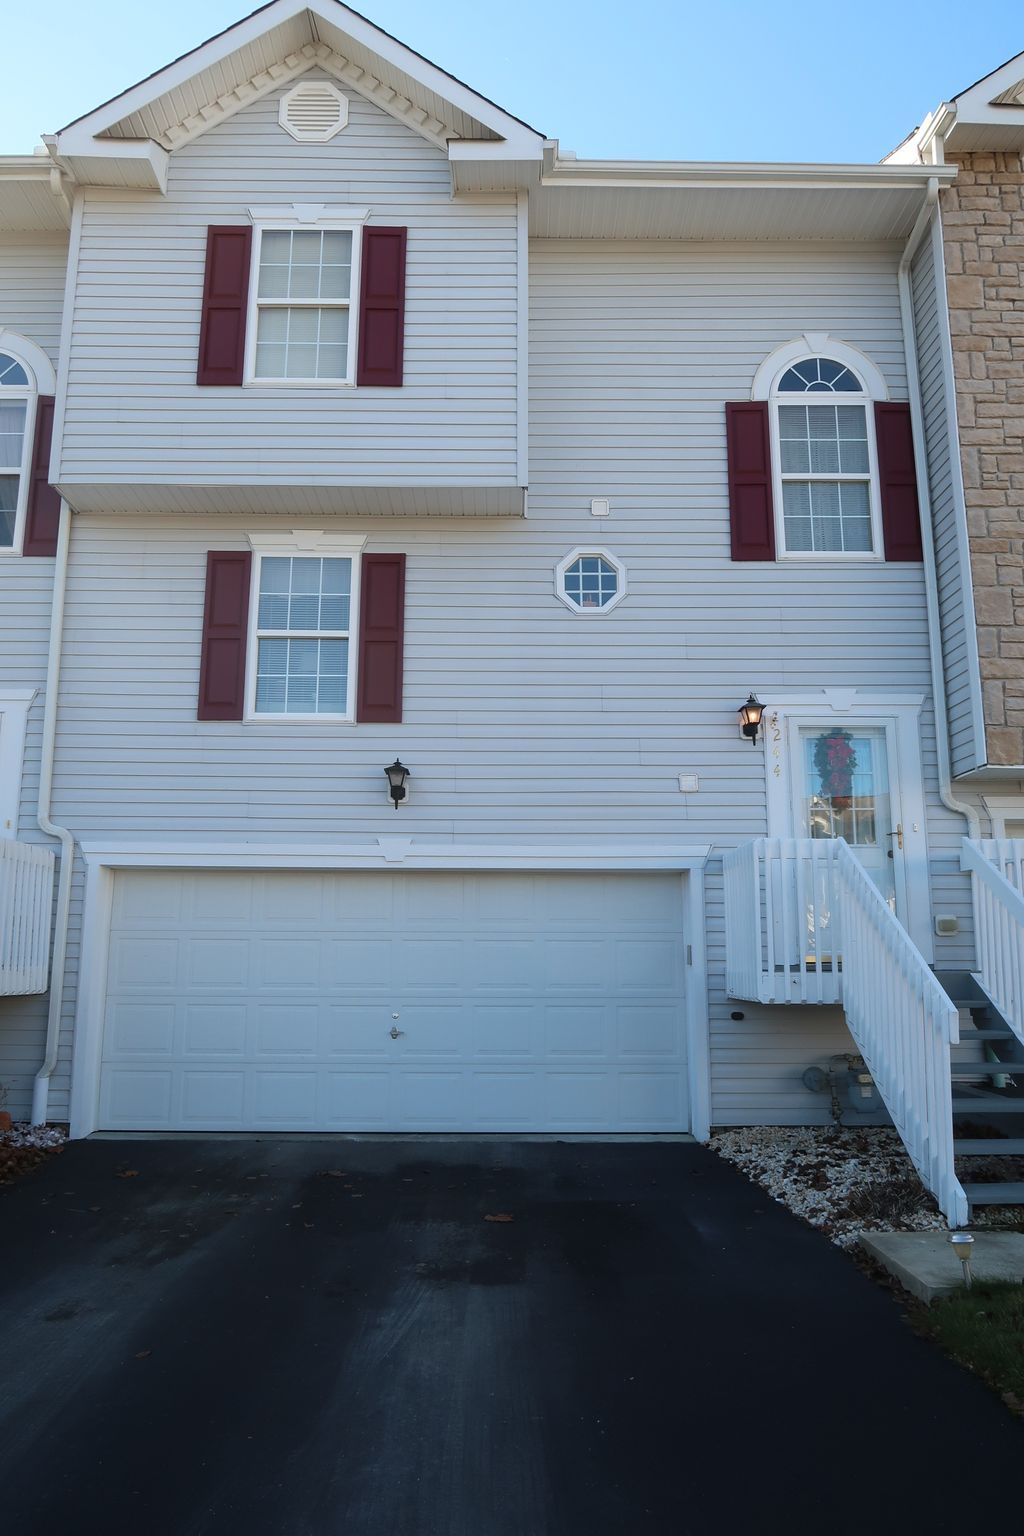 244 Manor View Dr, Manor, PA 15665 - Recently Sold | Trulia